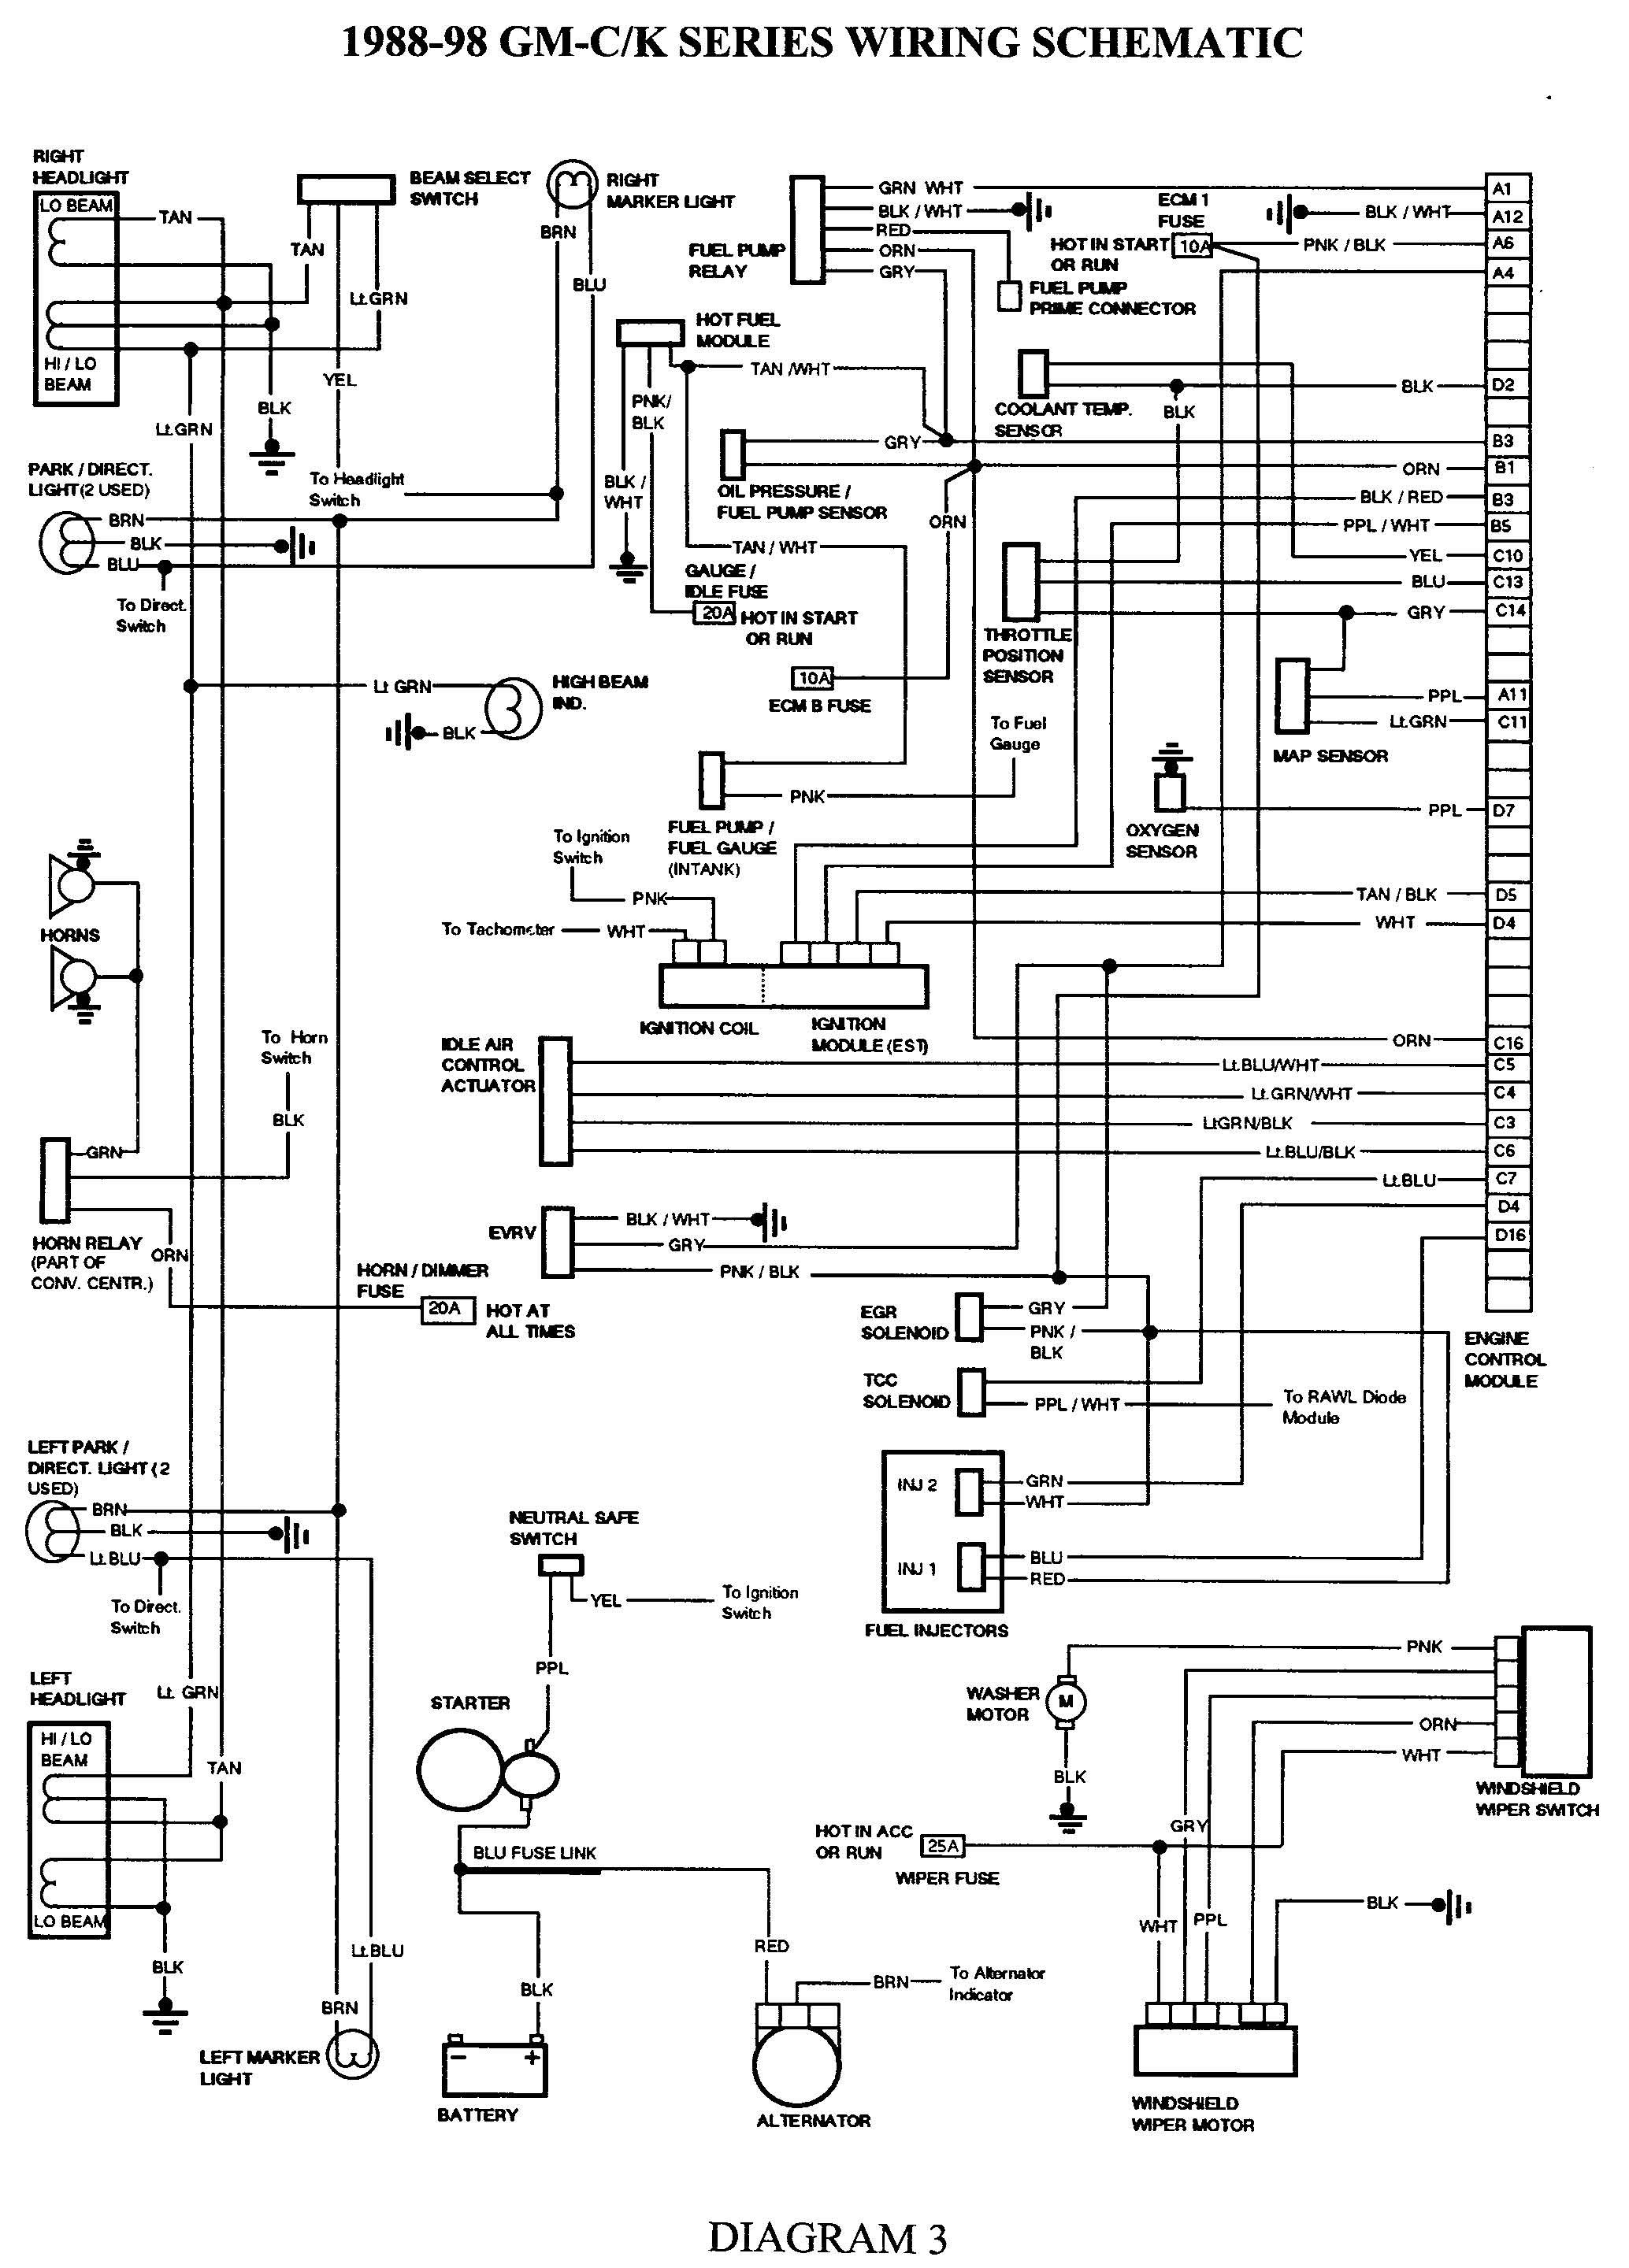 1983 chevy wiring harness trusted wiring diagram 57 chevy wiring harness 1983 chevy van wiring harness [ 2068 x 2880 Pixel ]